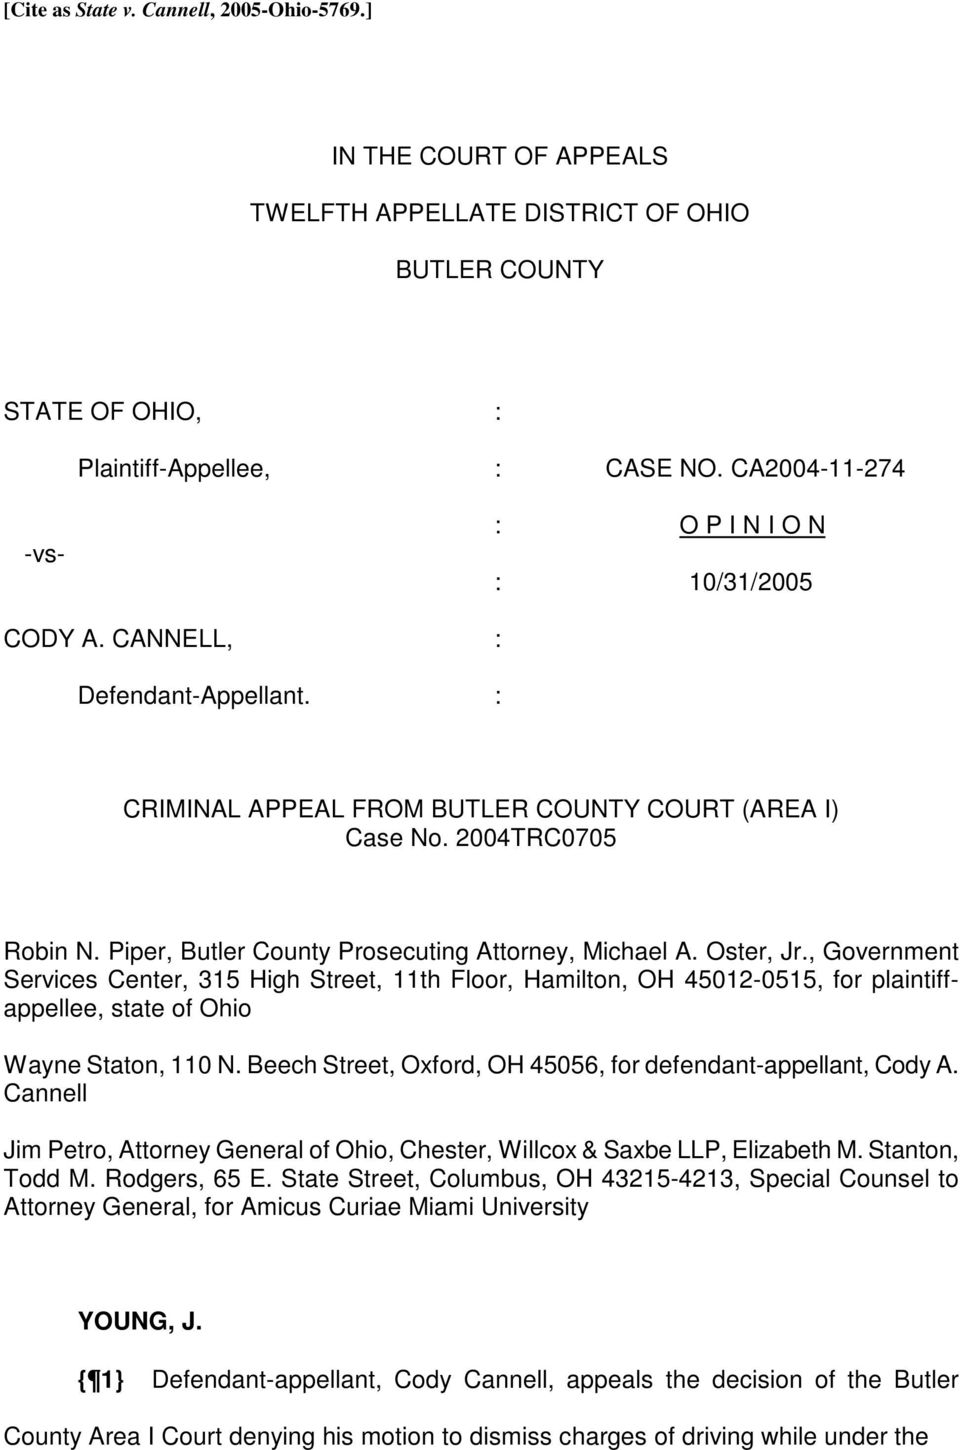 Piper, Butler County Prosecuting Attorney, Michael A. Oster, Jr.